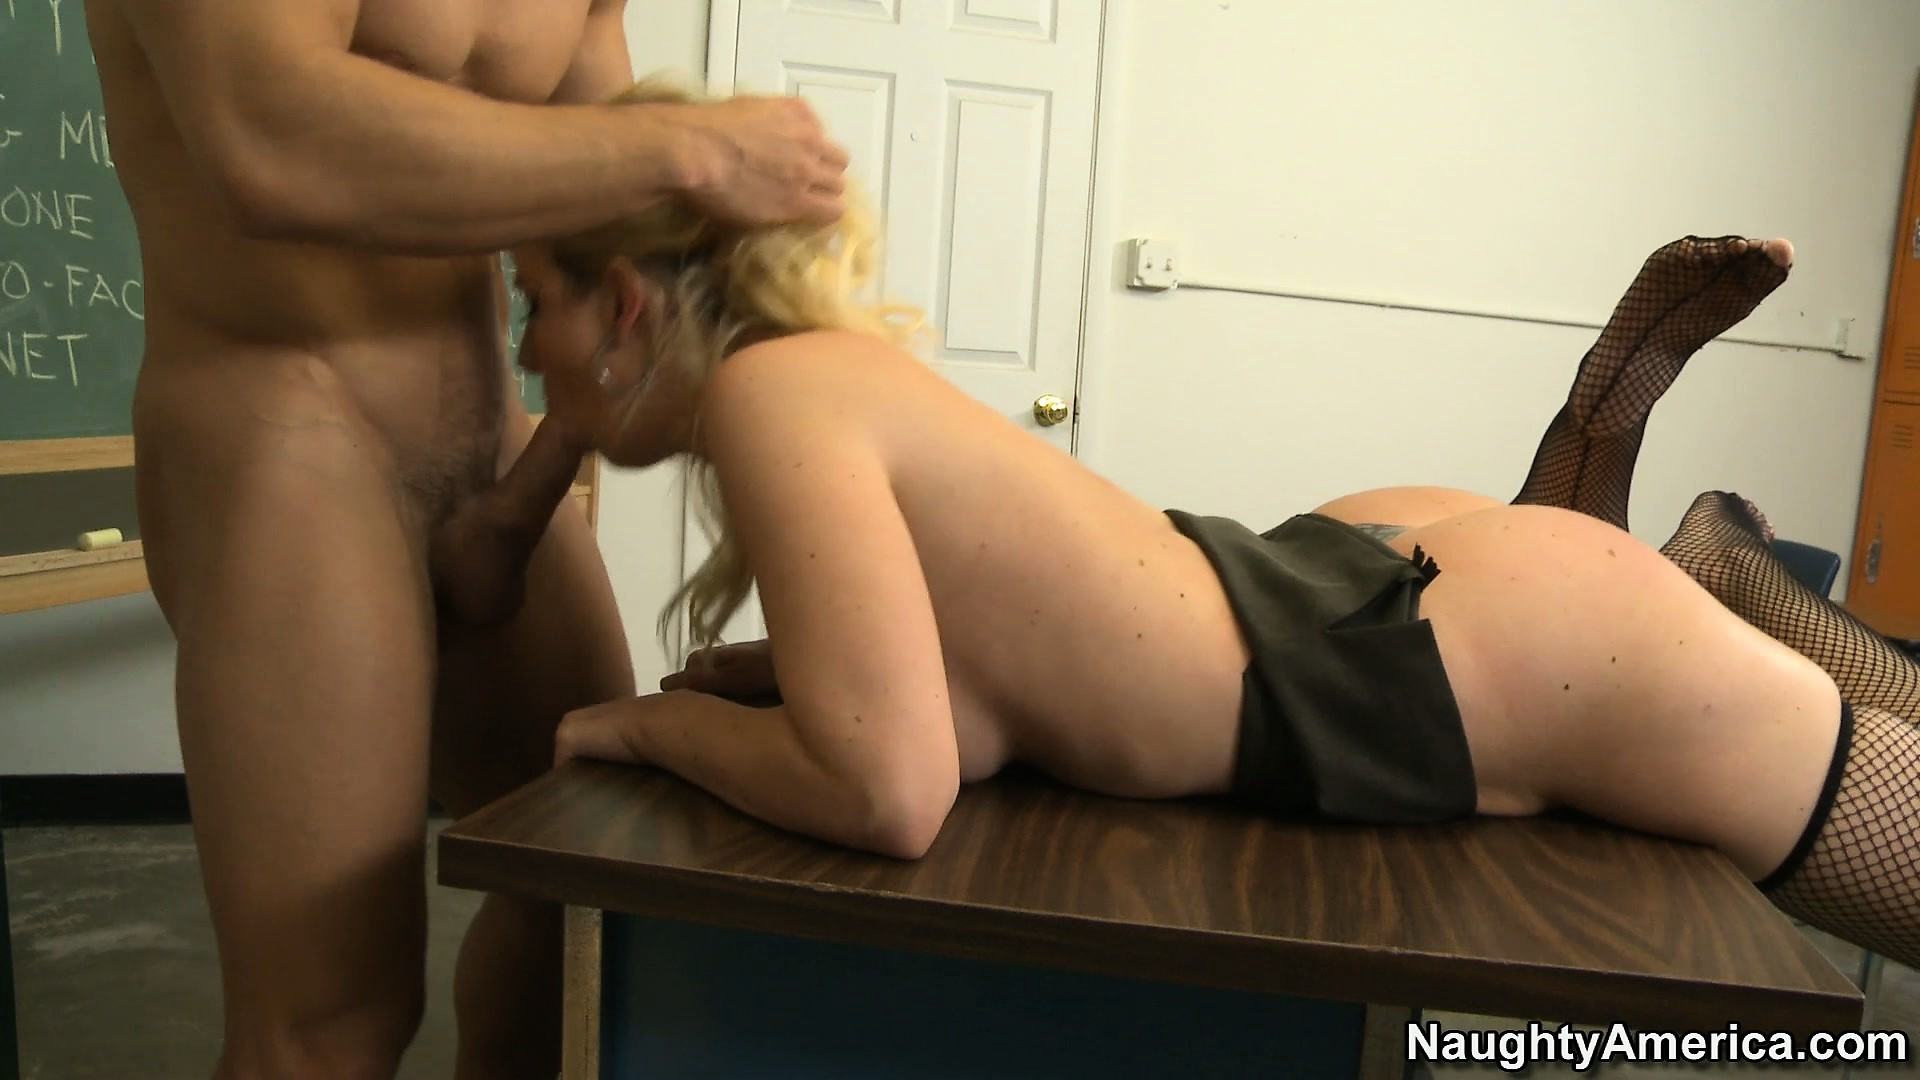 Porno Video of The Blonde Teacher Bends Over Her Table And Enjoys A Deep Pounding From Behind